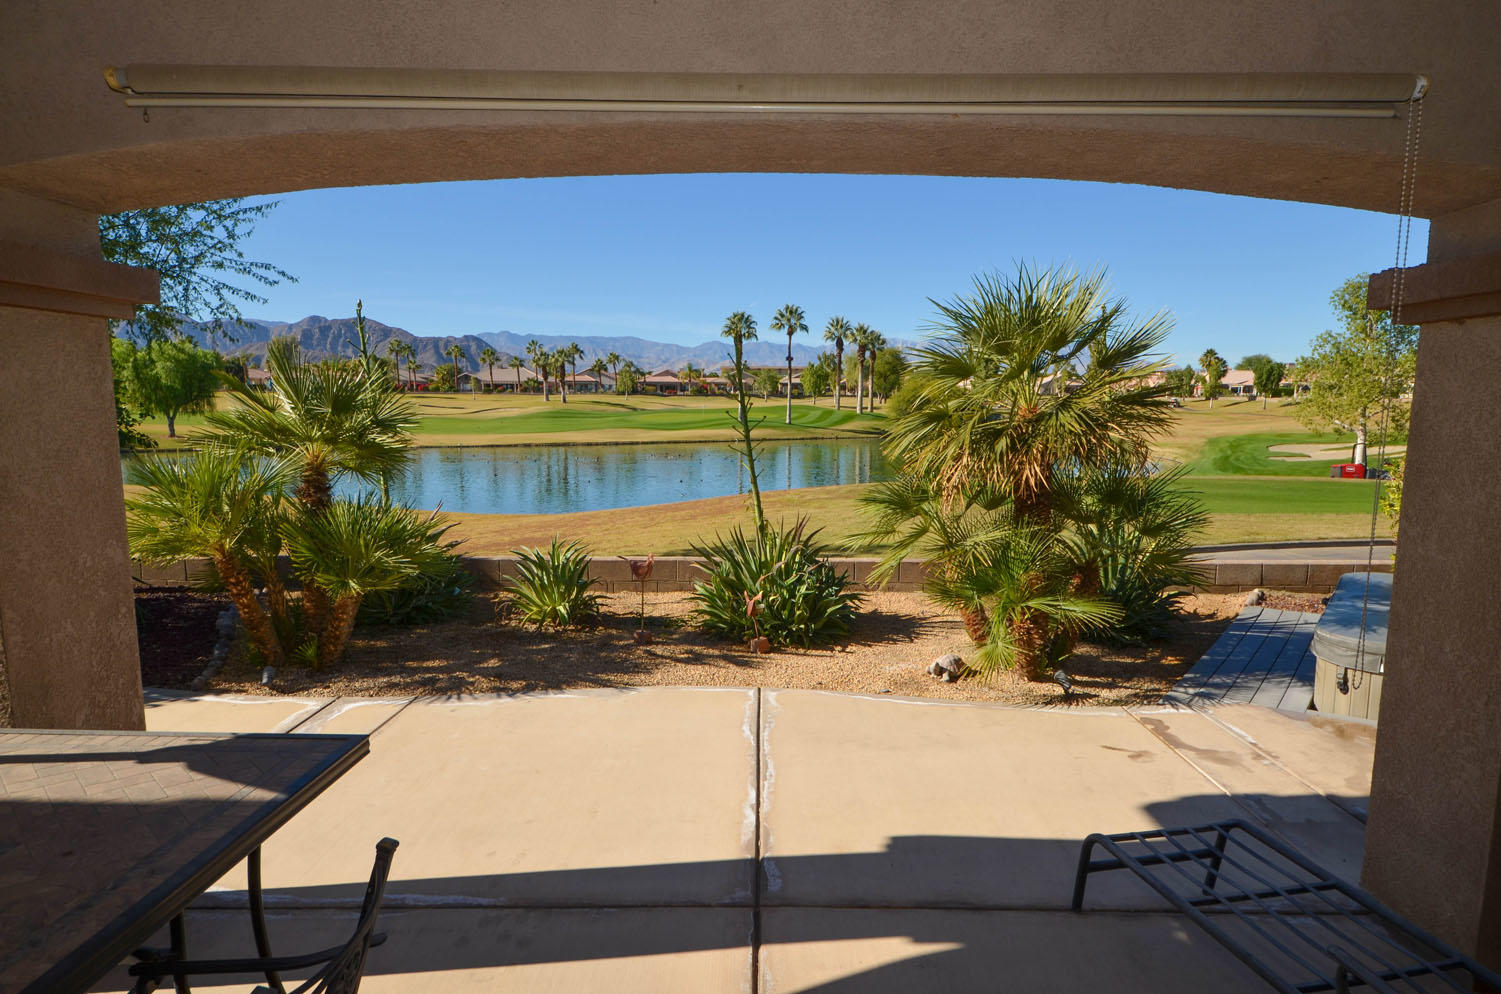 Million dollar view for half the price! This property is being sold fully turnkey furnished for a great seasonal rental. New AC, water heater, circulating pump, sofa, and cover for the spa all within the last year.